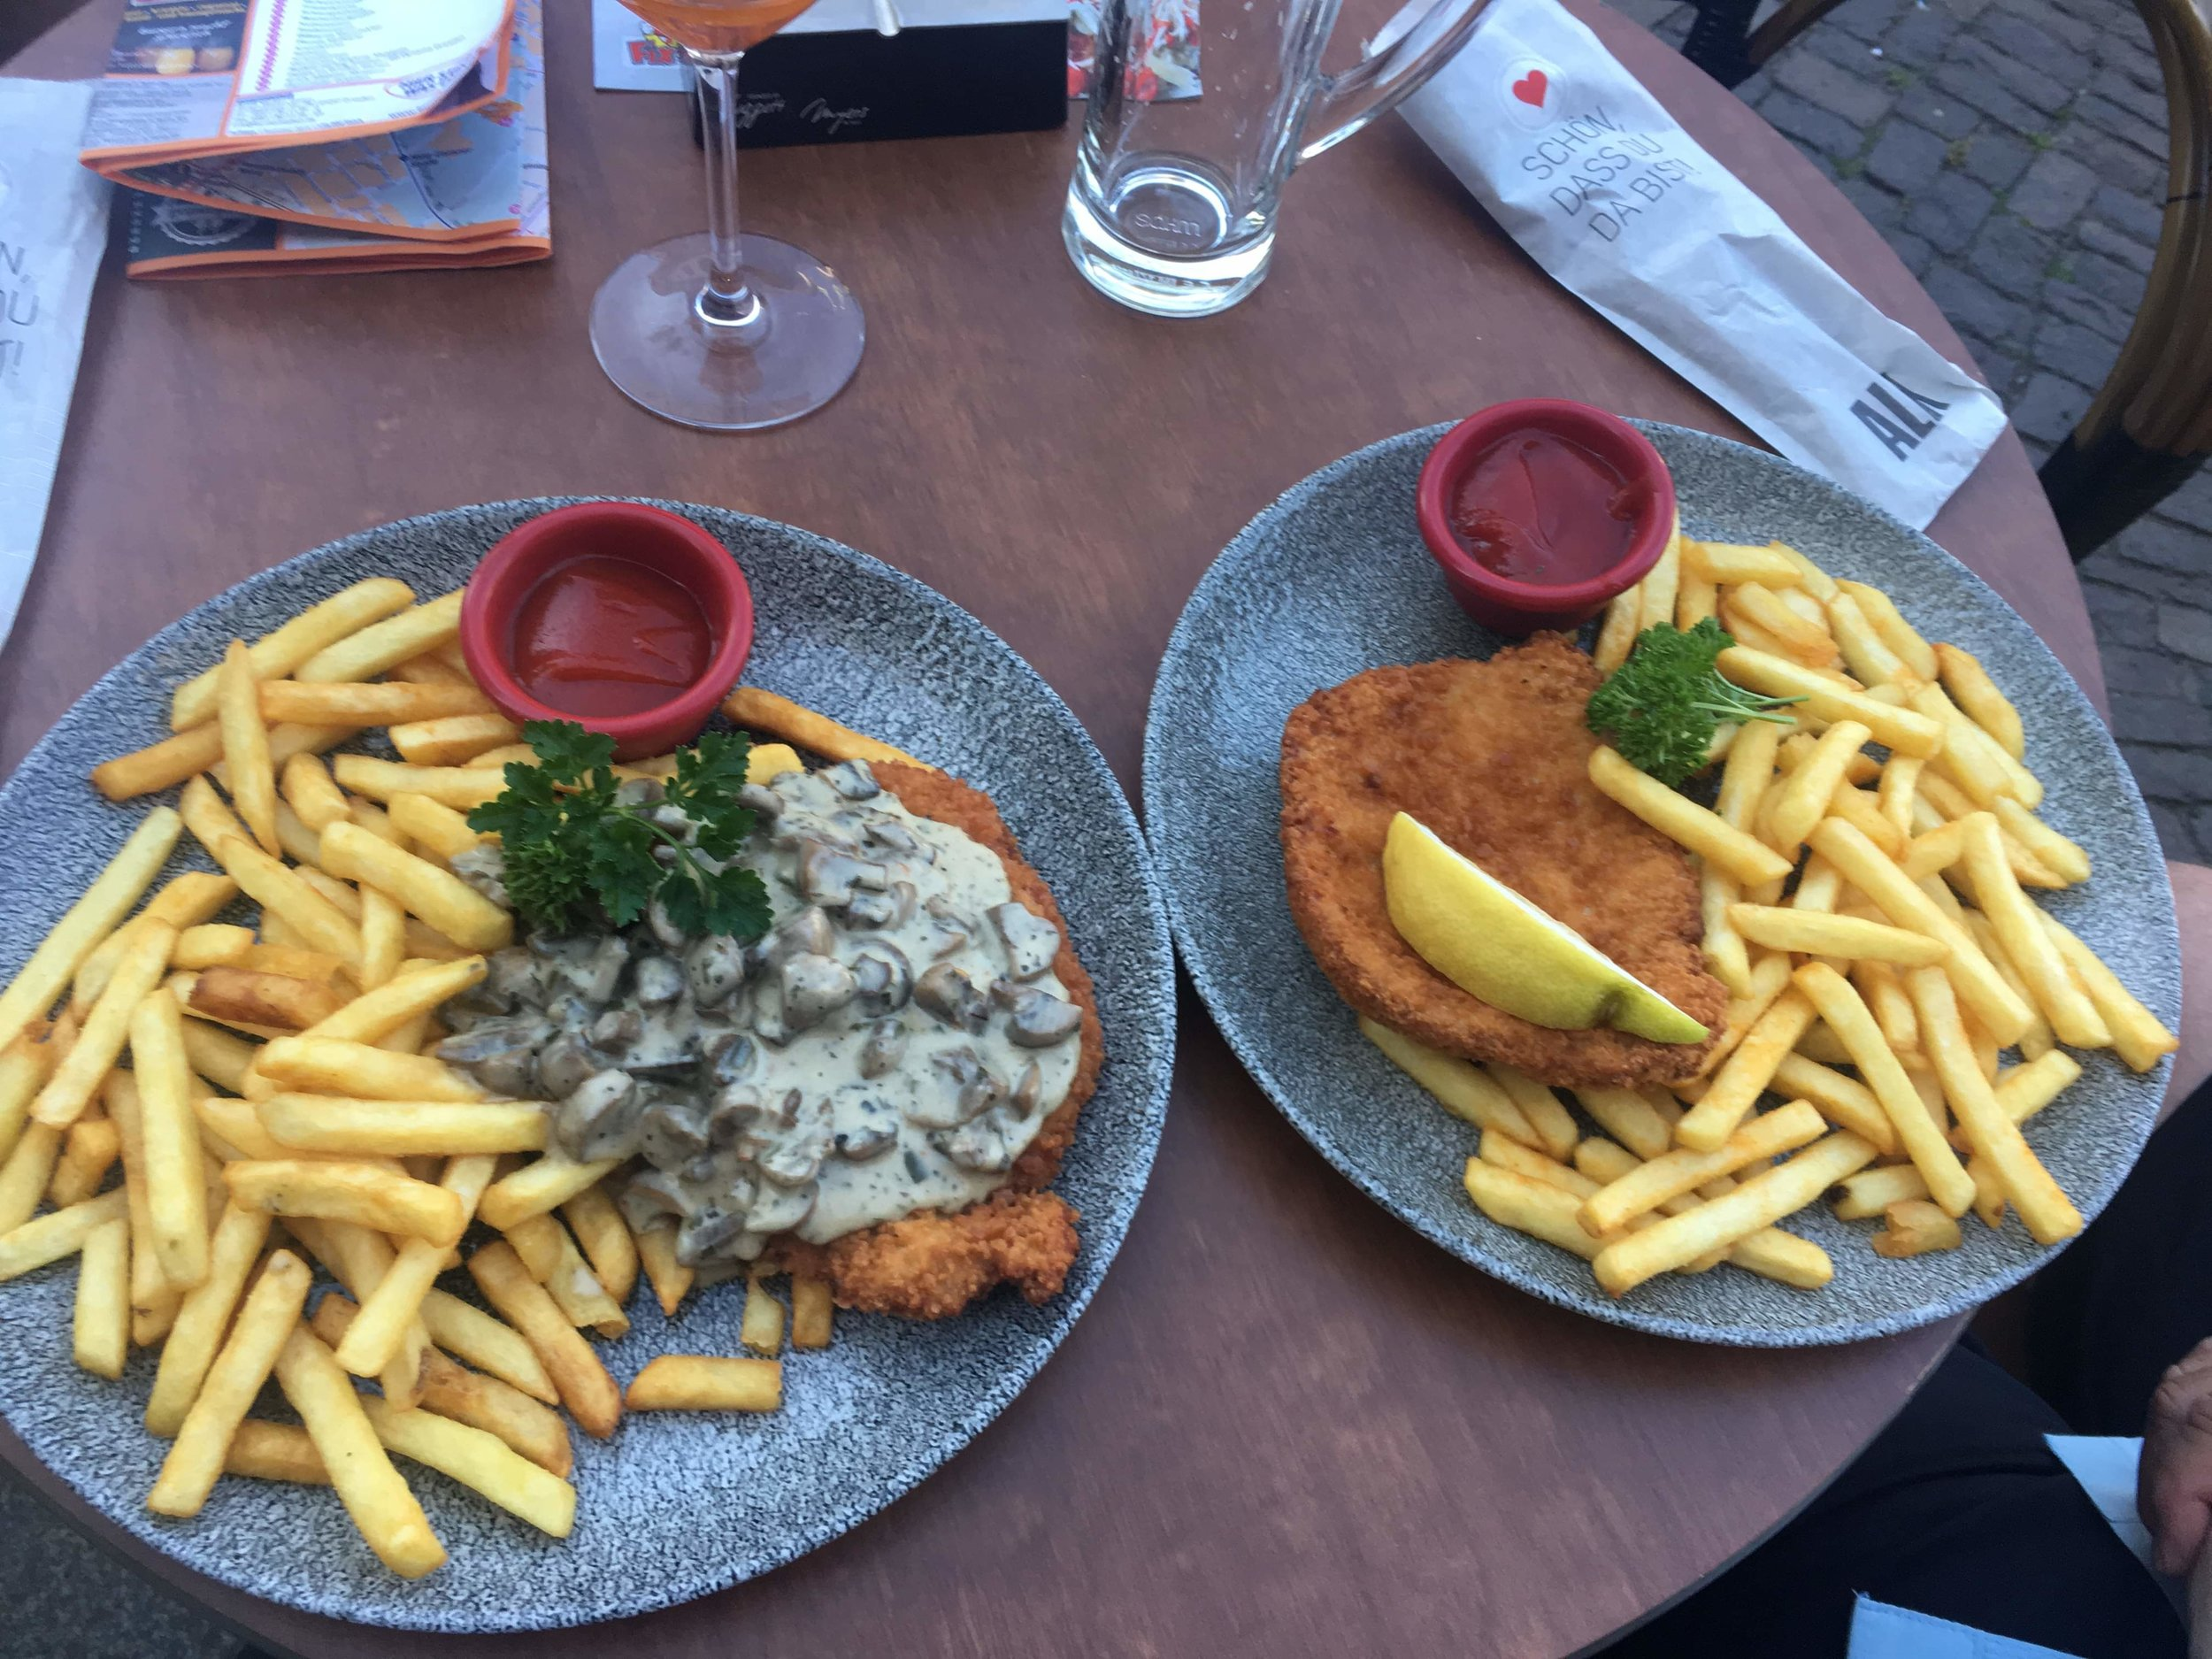 In the running for Best Schnitzel, Europe